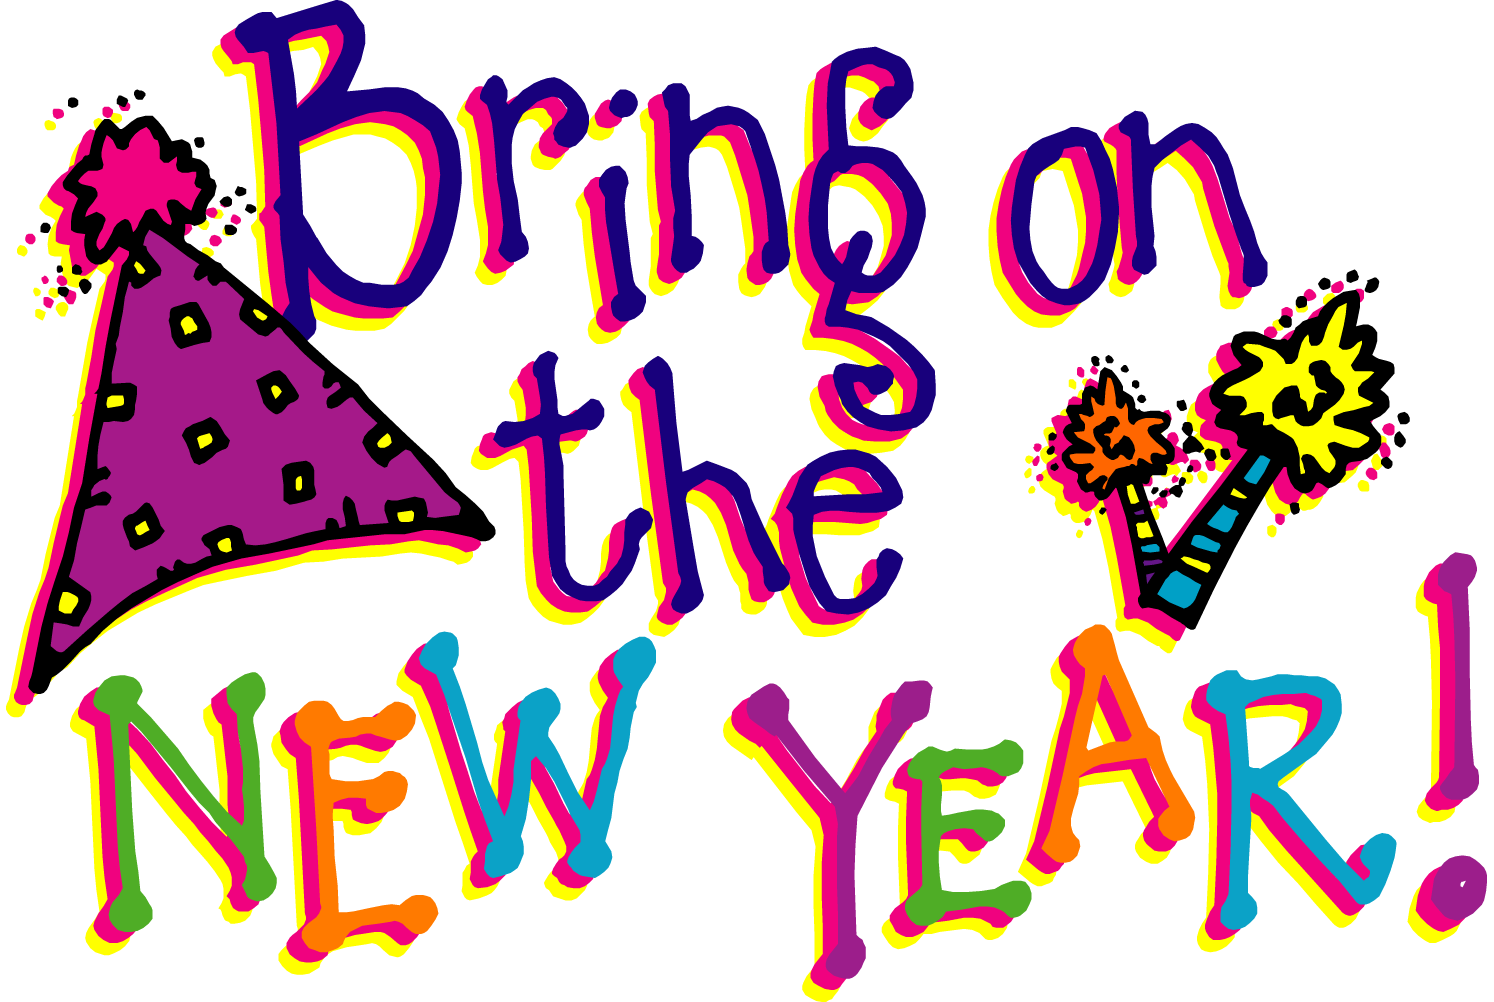 Free Happy New Year 2015 Clipart Images-Free Happy New Year 2015 Clipart Images-4